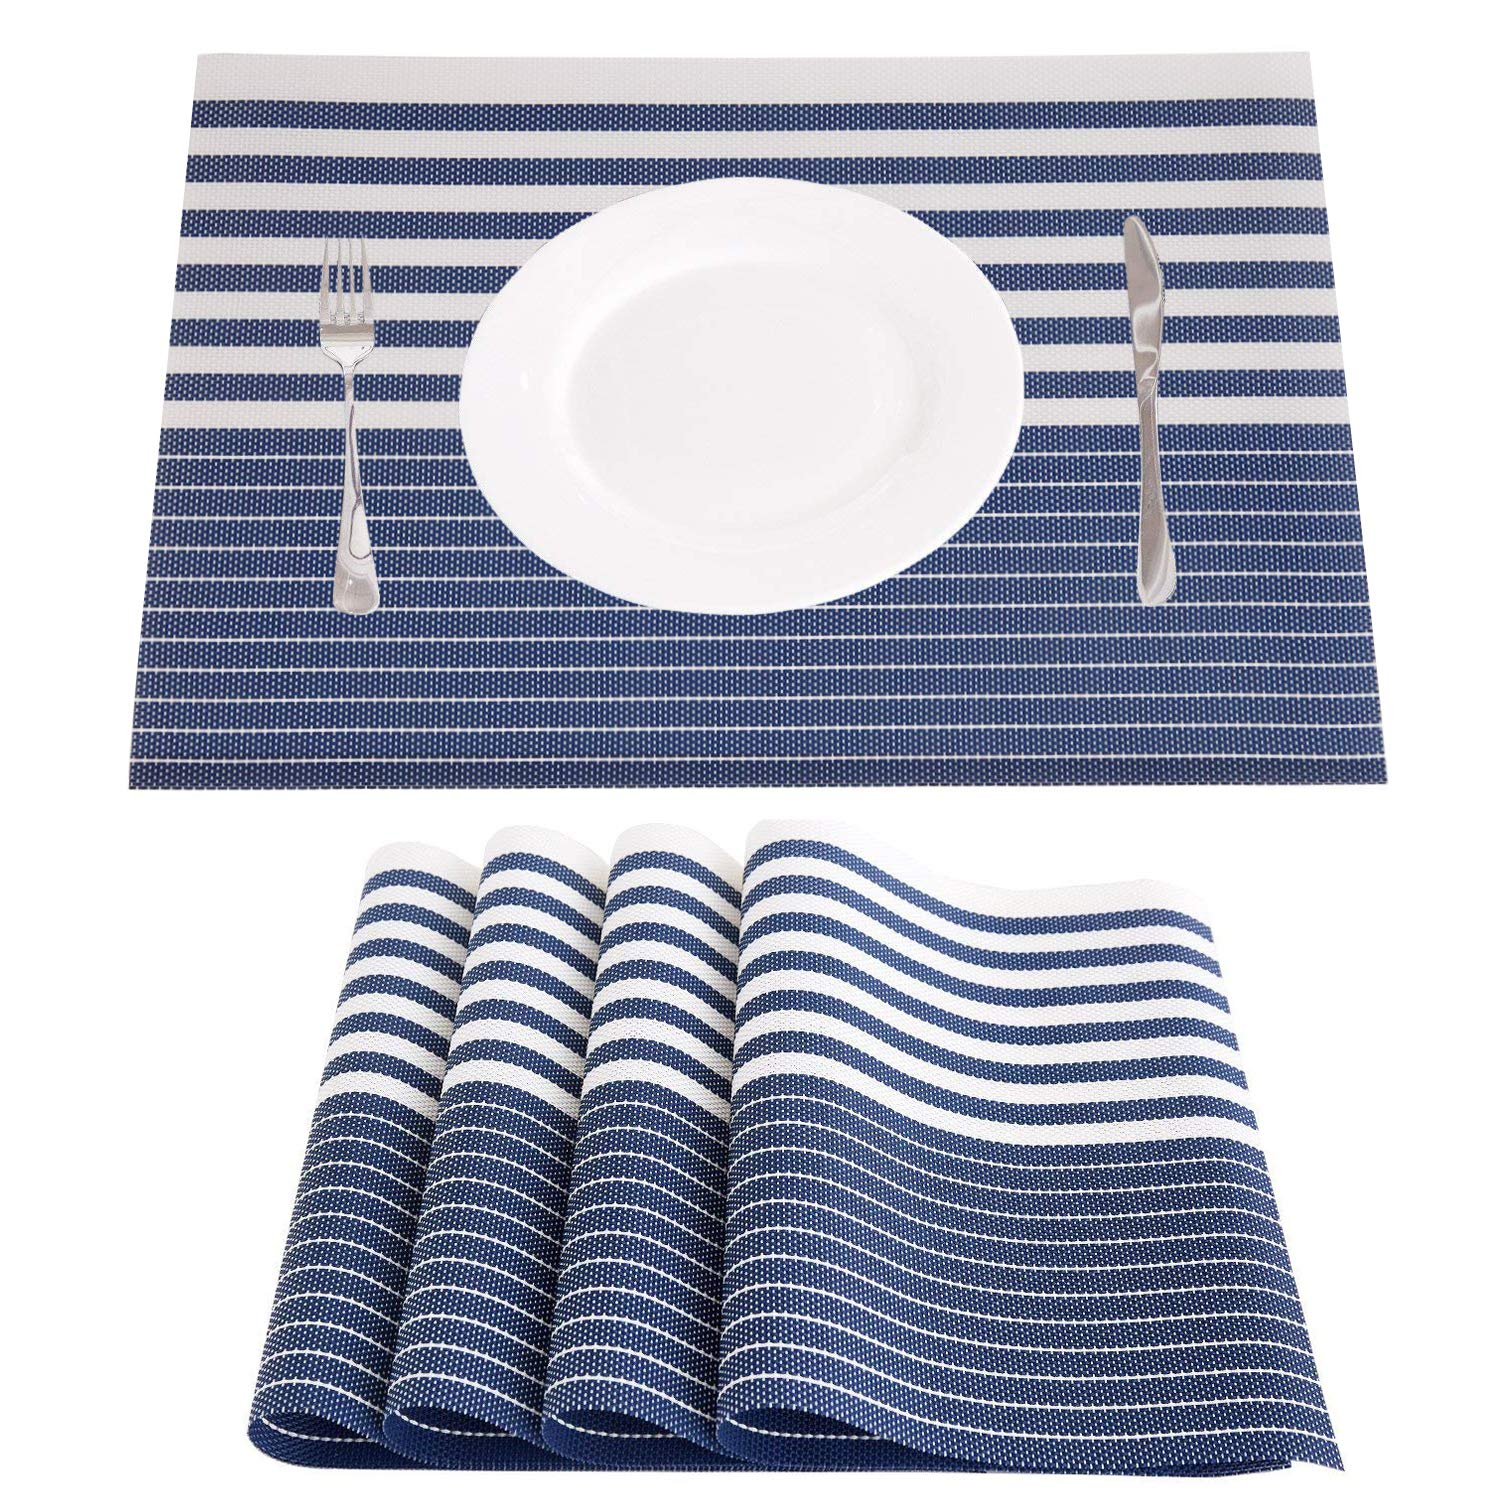 NJCharms Placemats Set of 4, Heat Resistant Washable Nautical Blue Placemats for Kitchen Dining Table Environmental PVC Wipeable Crossweave Vinyl Woven Placemats Table Mats Easy to Clean, Navy Blue